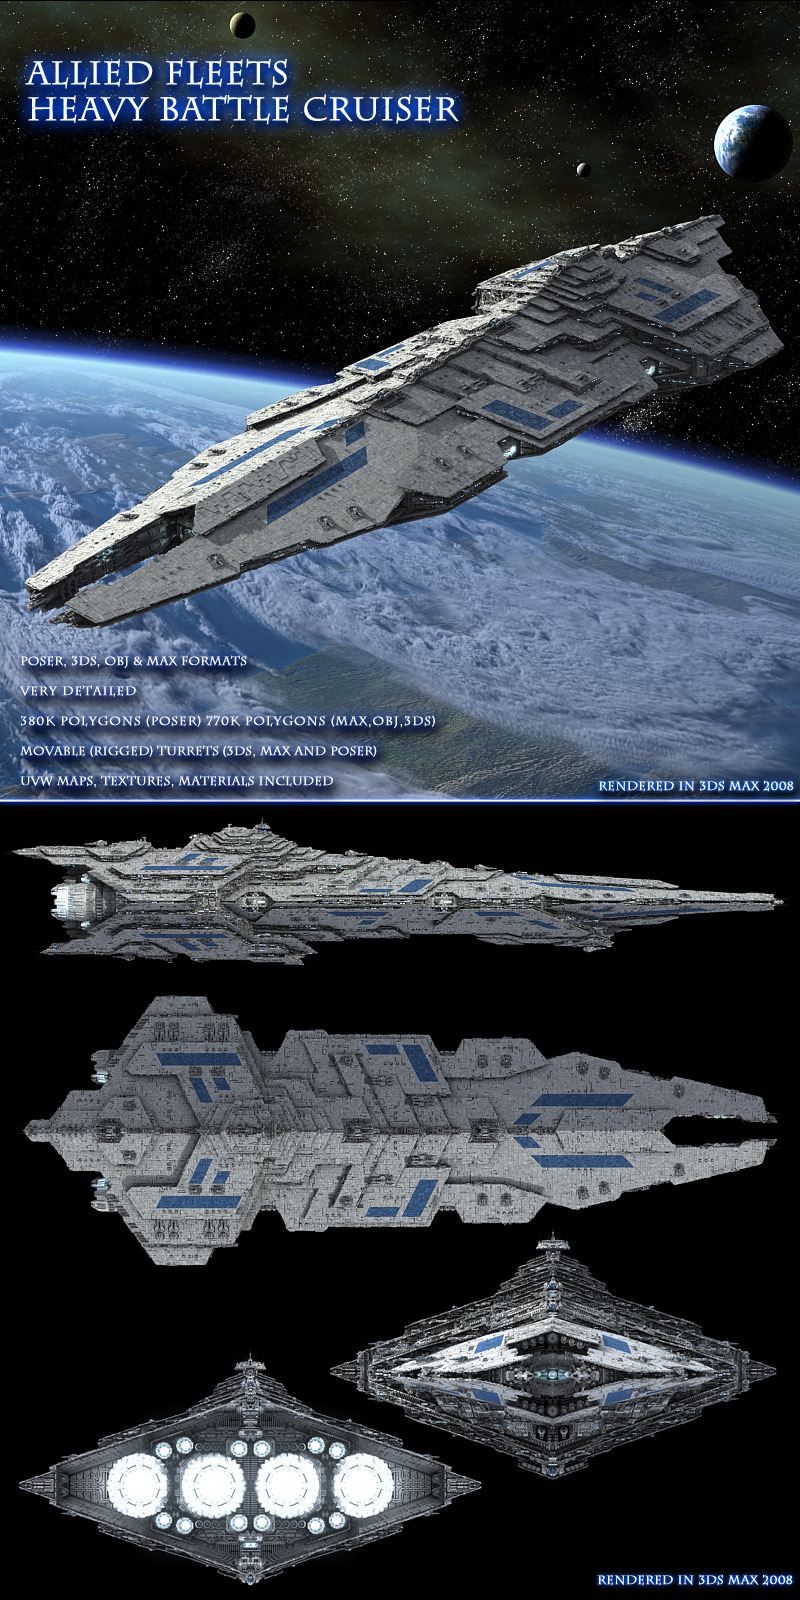 Allied Fleets Heavy Battle Cruiser - Poser,DAZ,OBJ,3DS,MAX - Extended License by Simon-3D